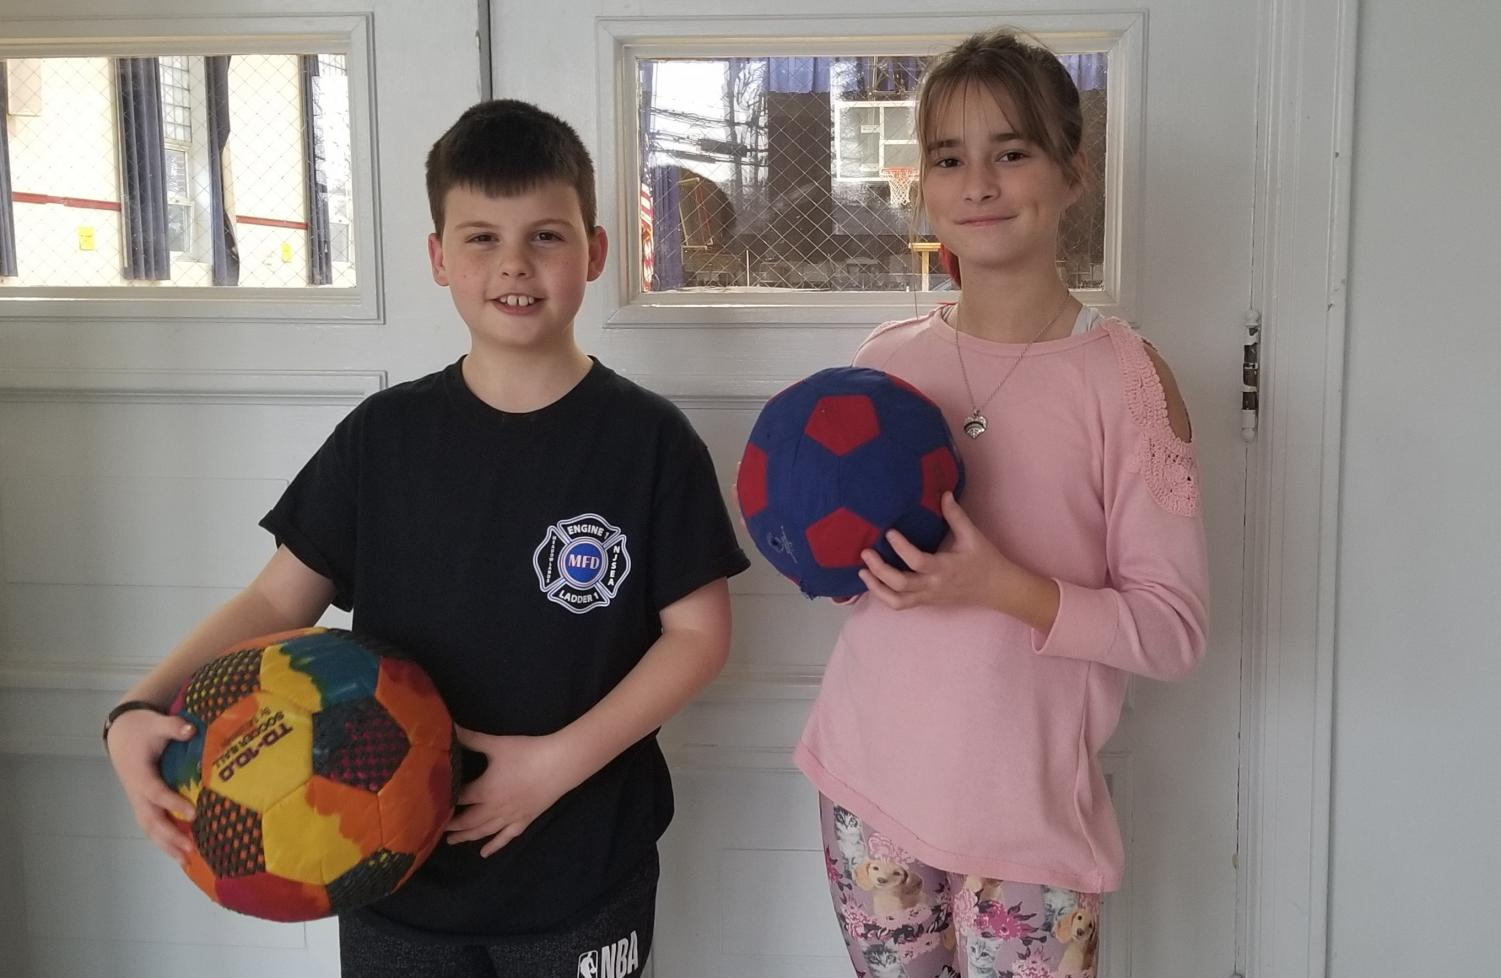 Sixth graders Hugh Hennessey and Mia Worthington both pay for the Emerson Eagles, the town's club team. Both athletes agree that practicing in the off season is key.